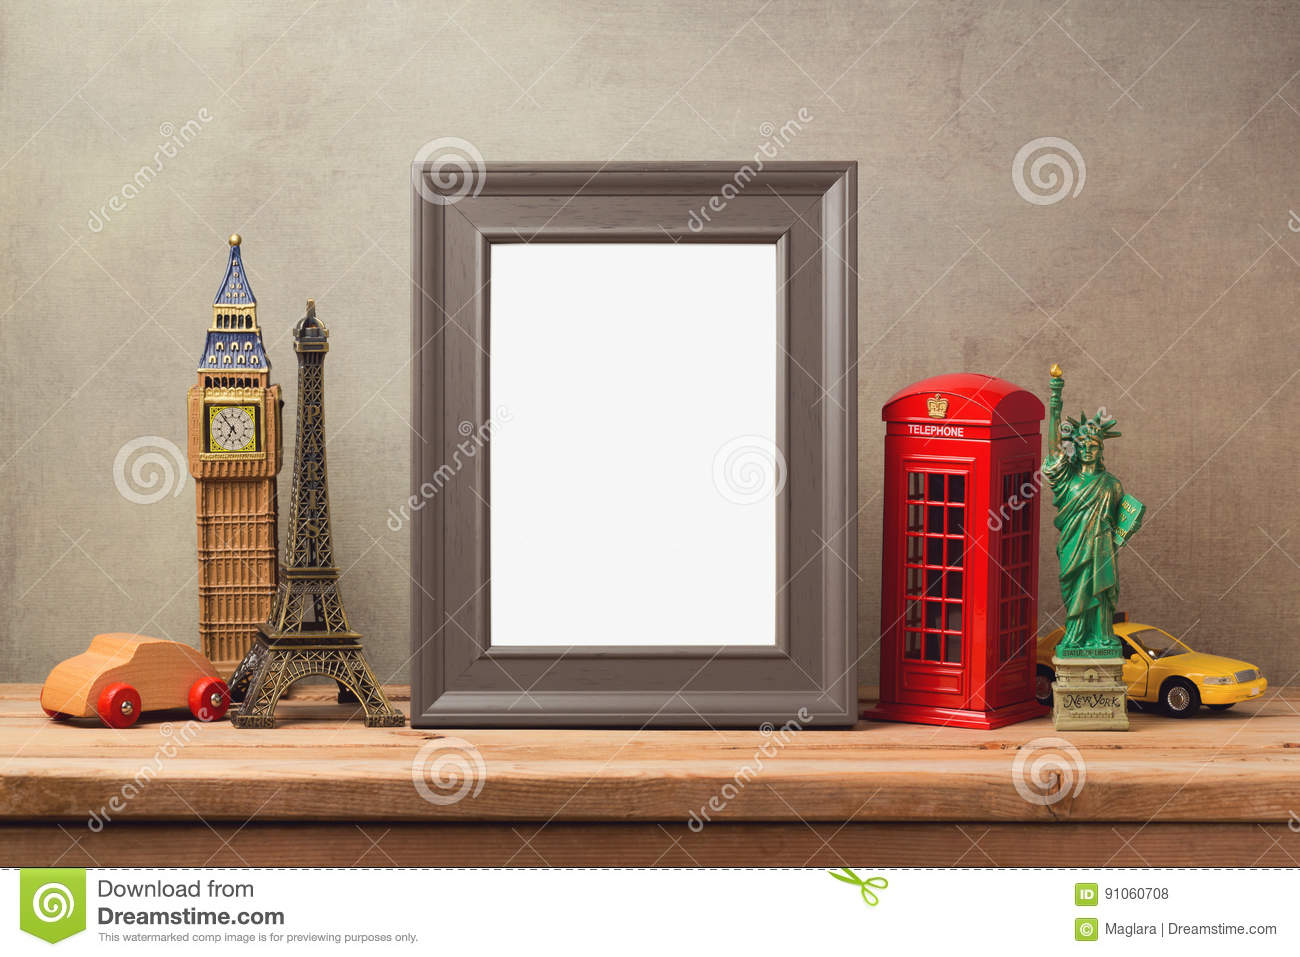 Travel And Tourism Concept With Photo Frame And Souvenirs From ...